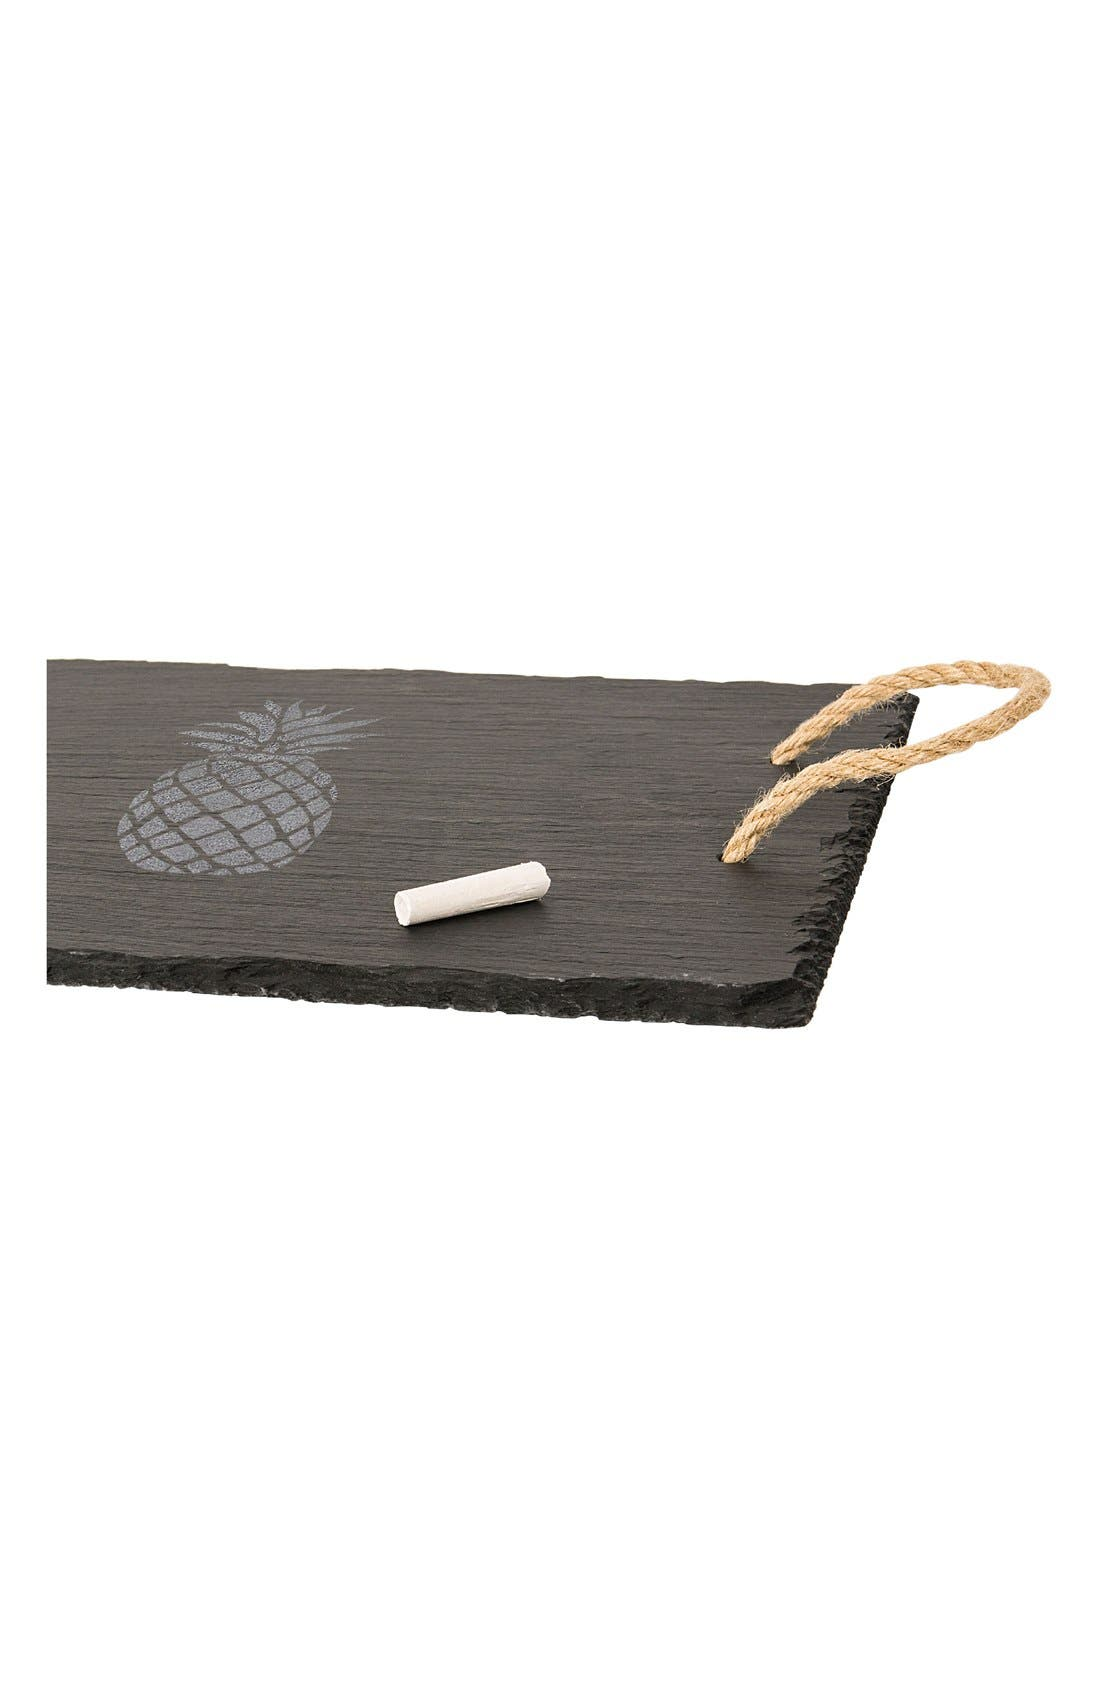 Pineapple Slate Serving Tray,                             Alternate thumbnail 5, color,                             020